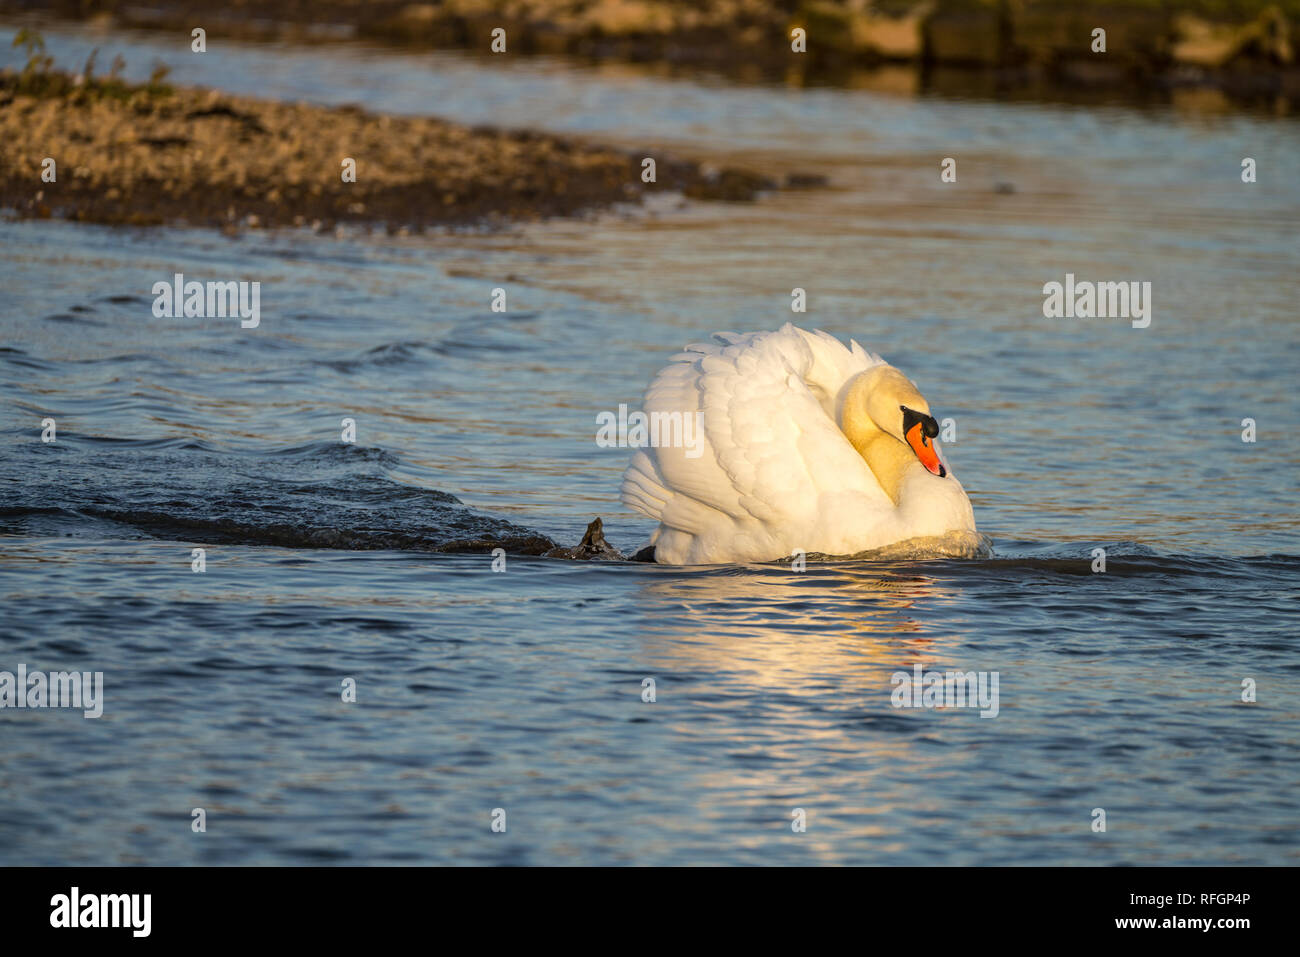 Mute Swan (Cygnus olor) in threat pose chasing a rival and racing across lake at speed. Side illumination by low sun. - Stock Image